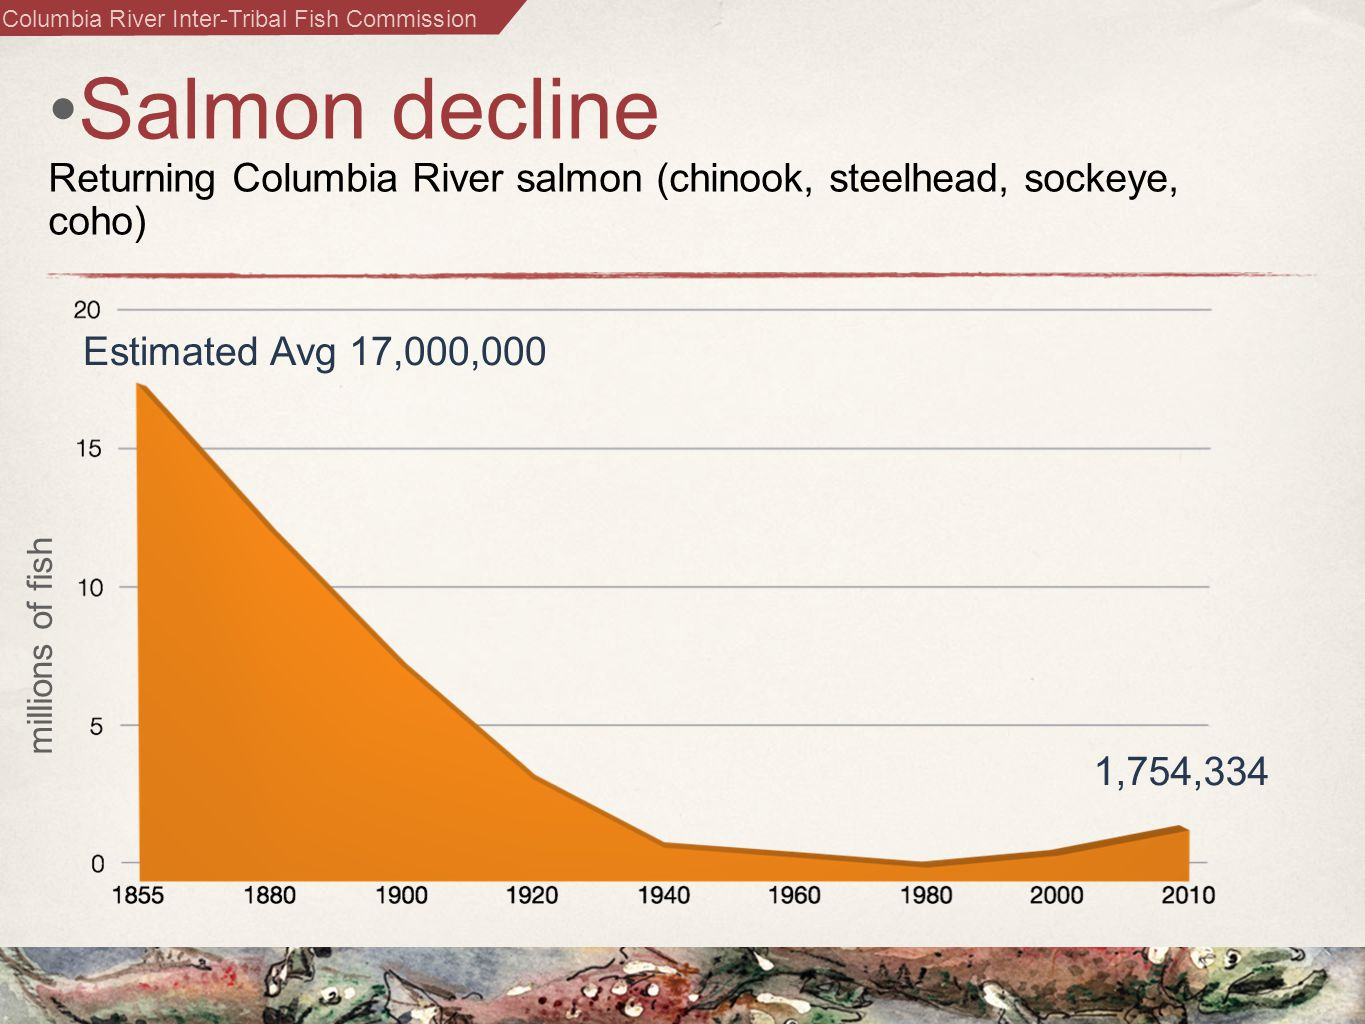 Columbia River Inter-Tribal Fish Commission Salmon decline Returning Columbia River salmon (chinook, steelhead, sockeye, coho) Estimated Avg 17,000,000 1,754,334 millions of fish